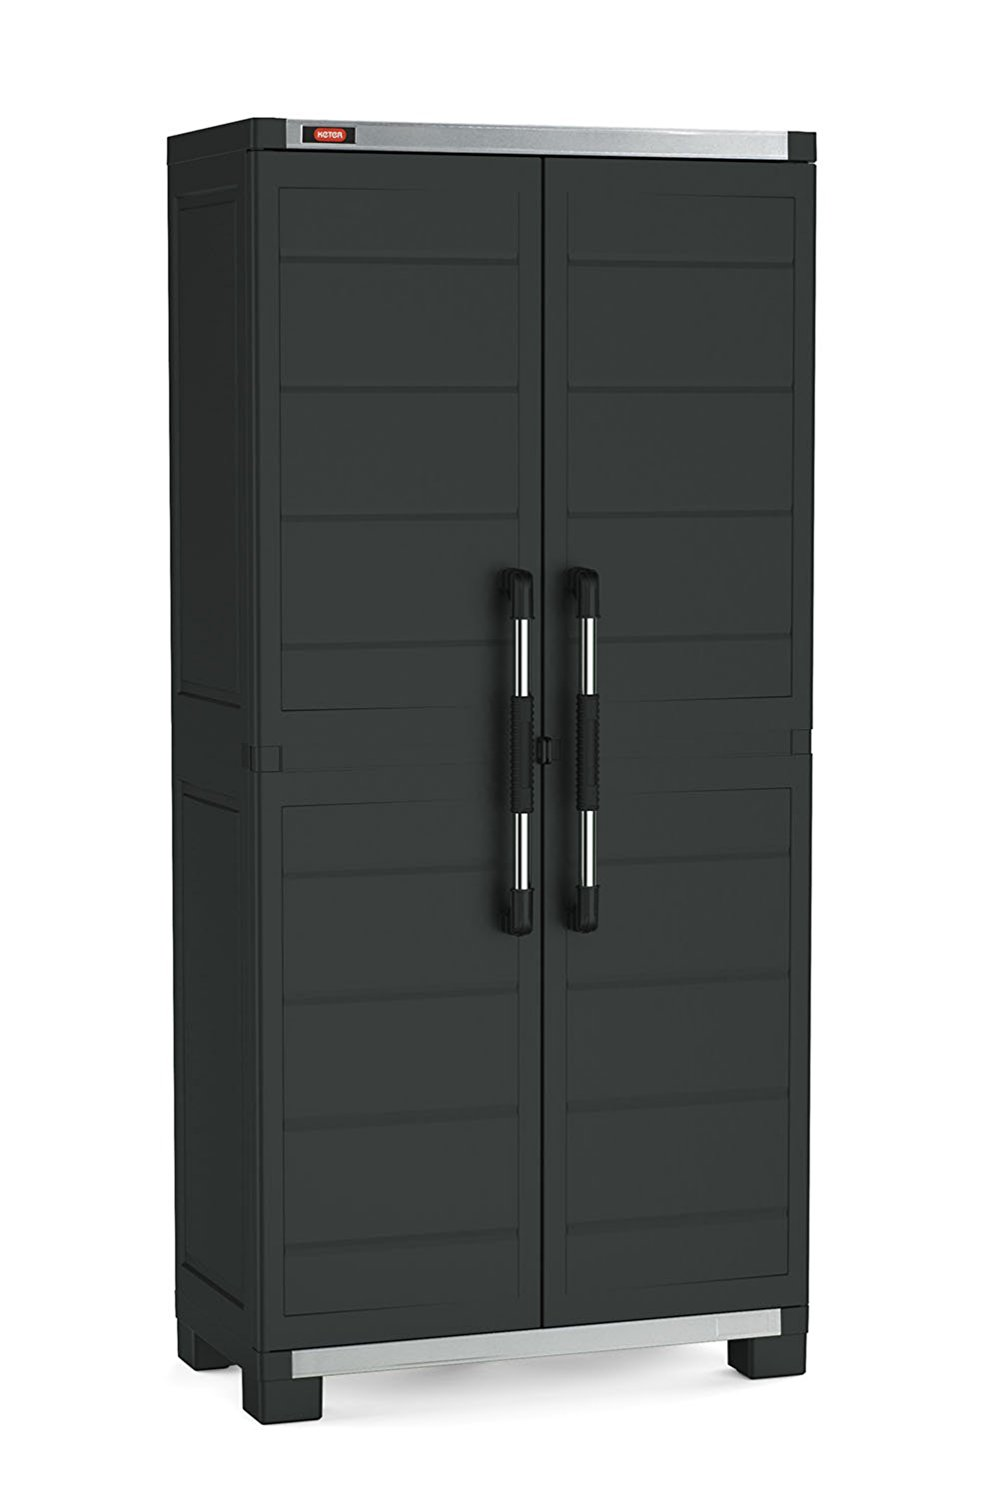 Keter XL Pro Freestanding Durable Resin Plastic Utility Tall Cabinet with Adjustable Shelving, Black